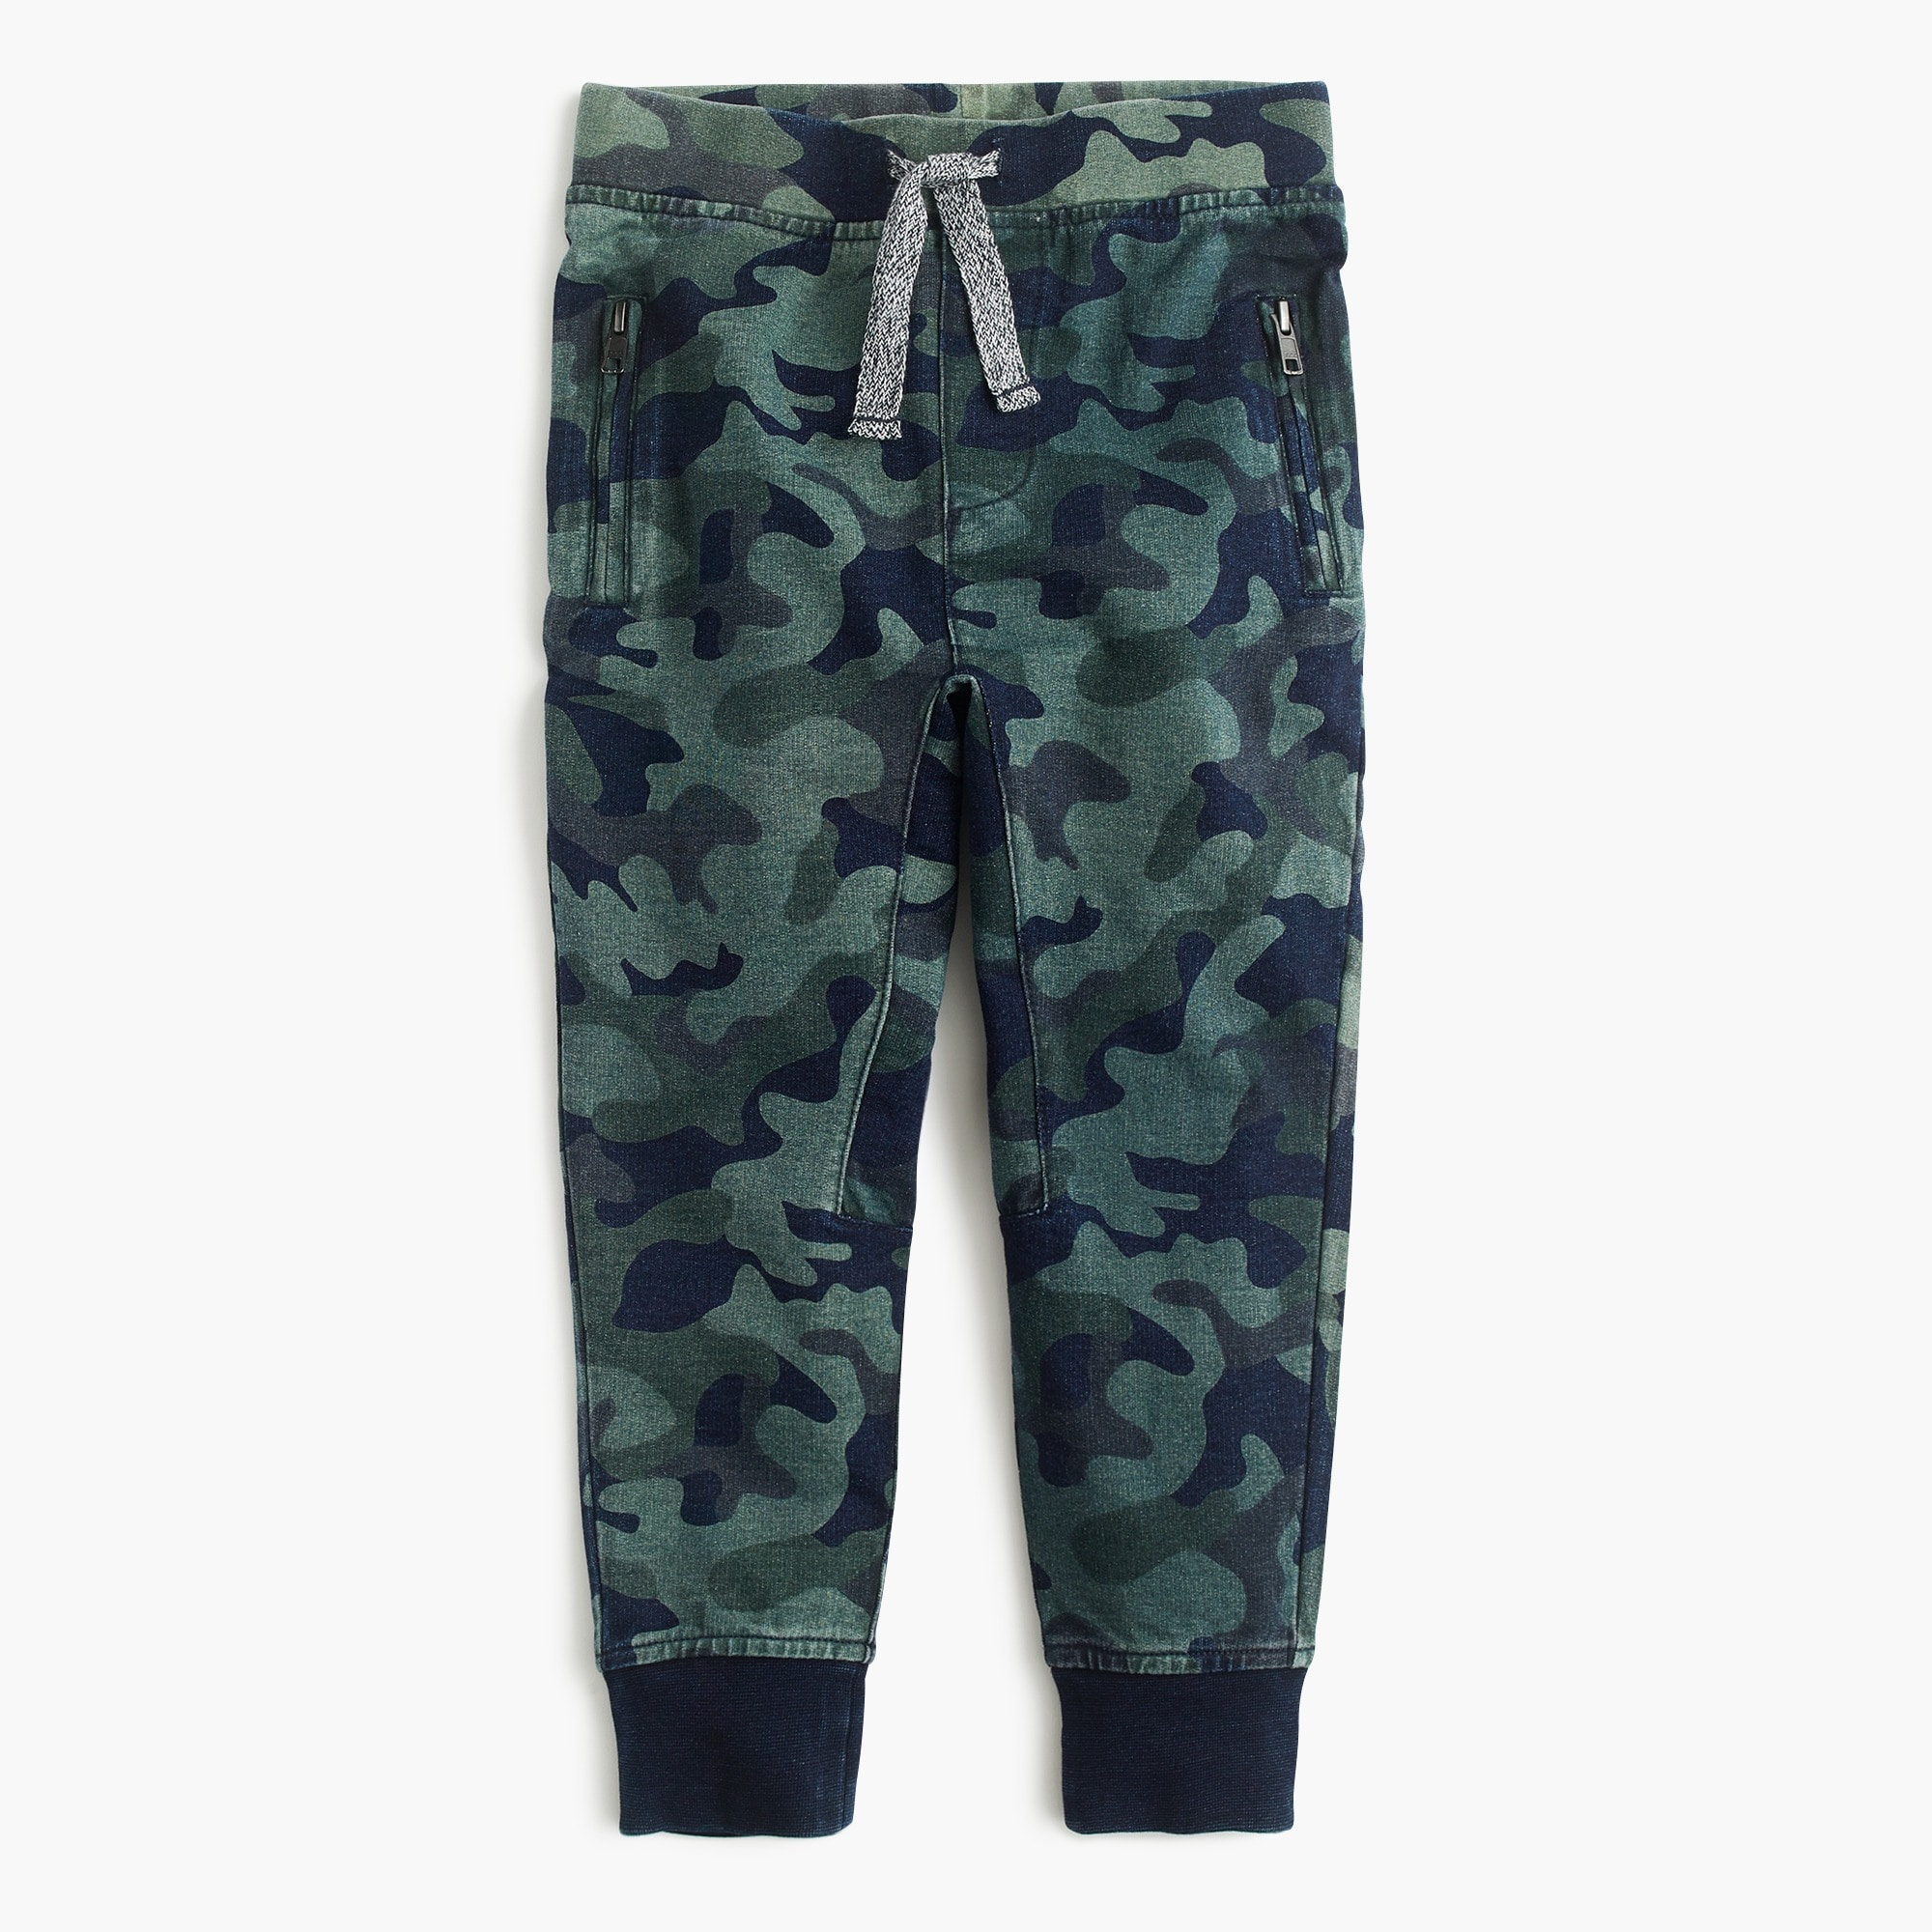 Image 1 for Boys' camo sweatpant in slim fit